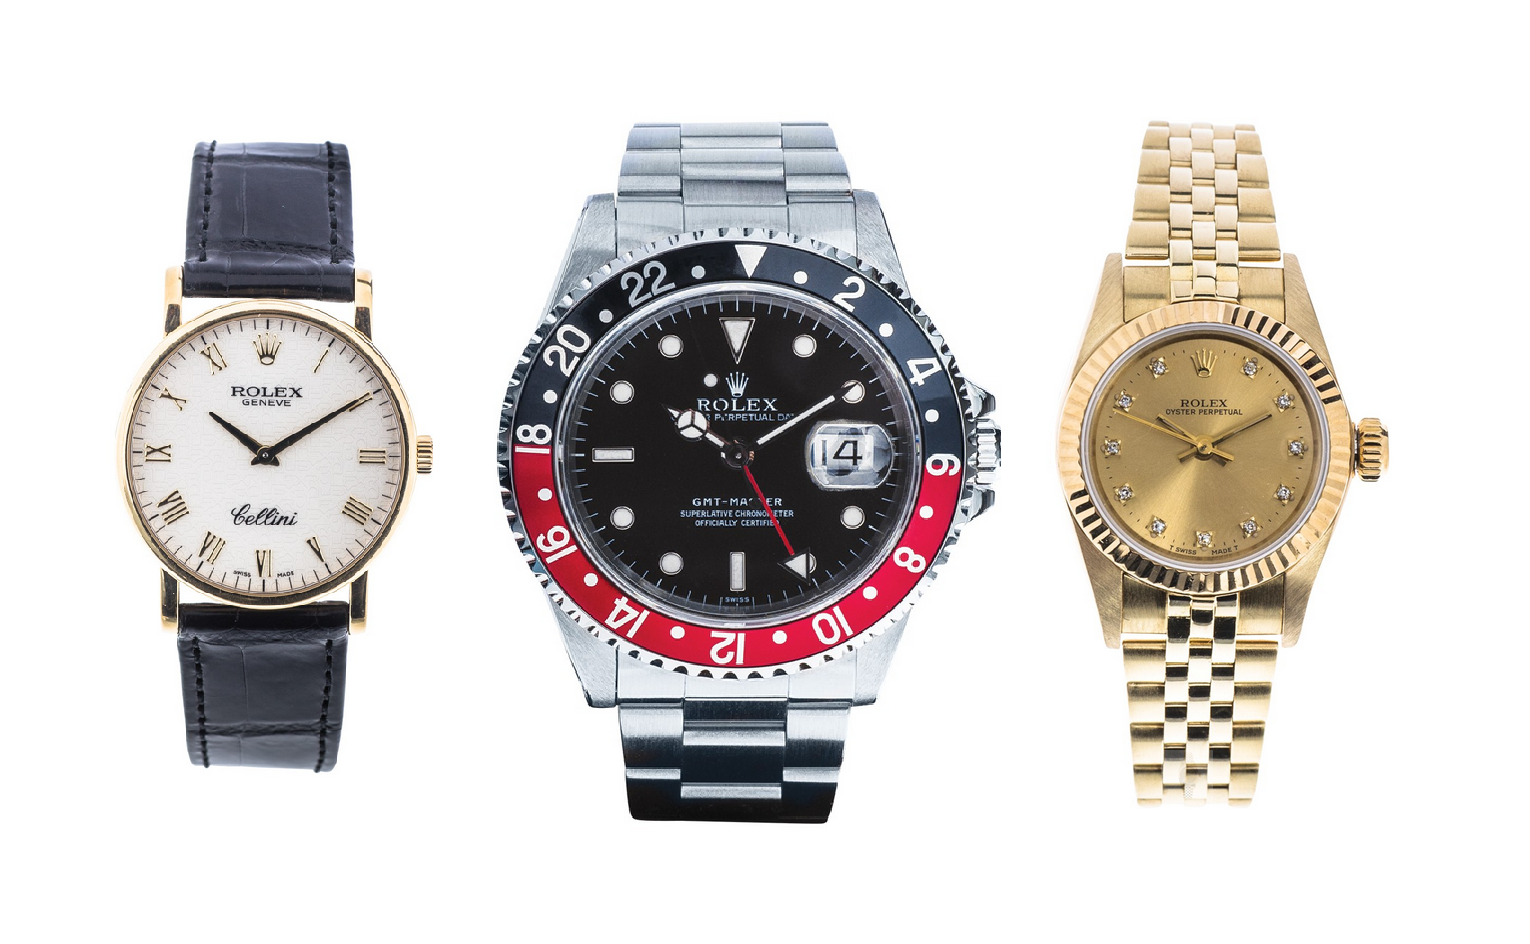 Preowned Rolex Watches from Leo Hamel Fine Jewelers San Diego